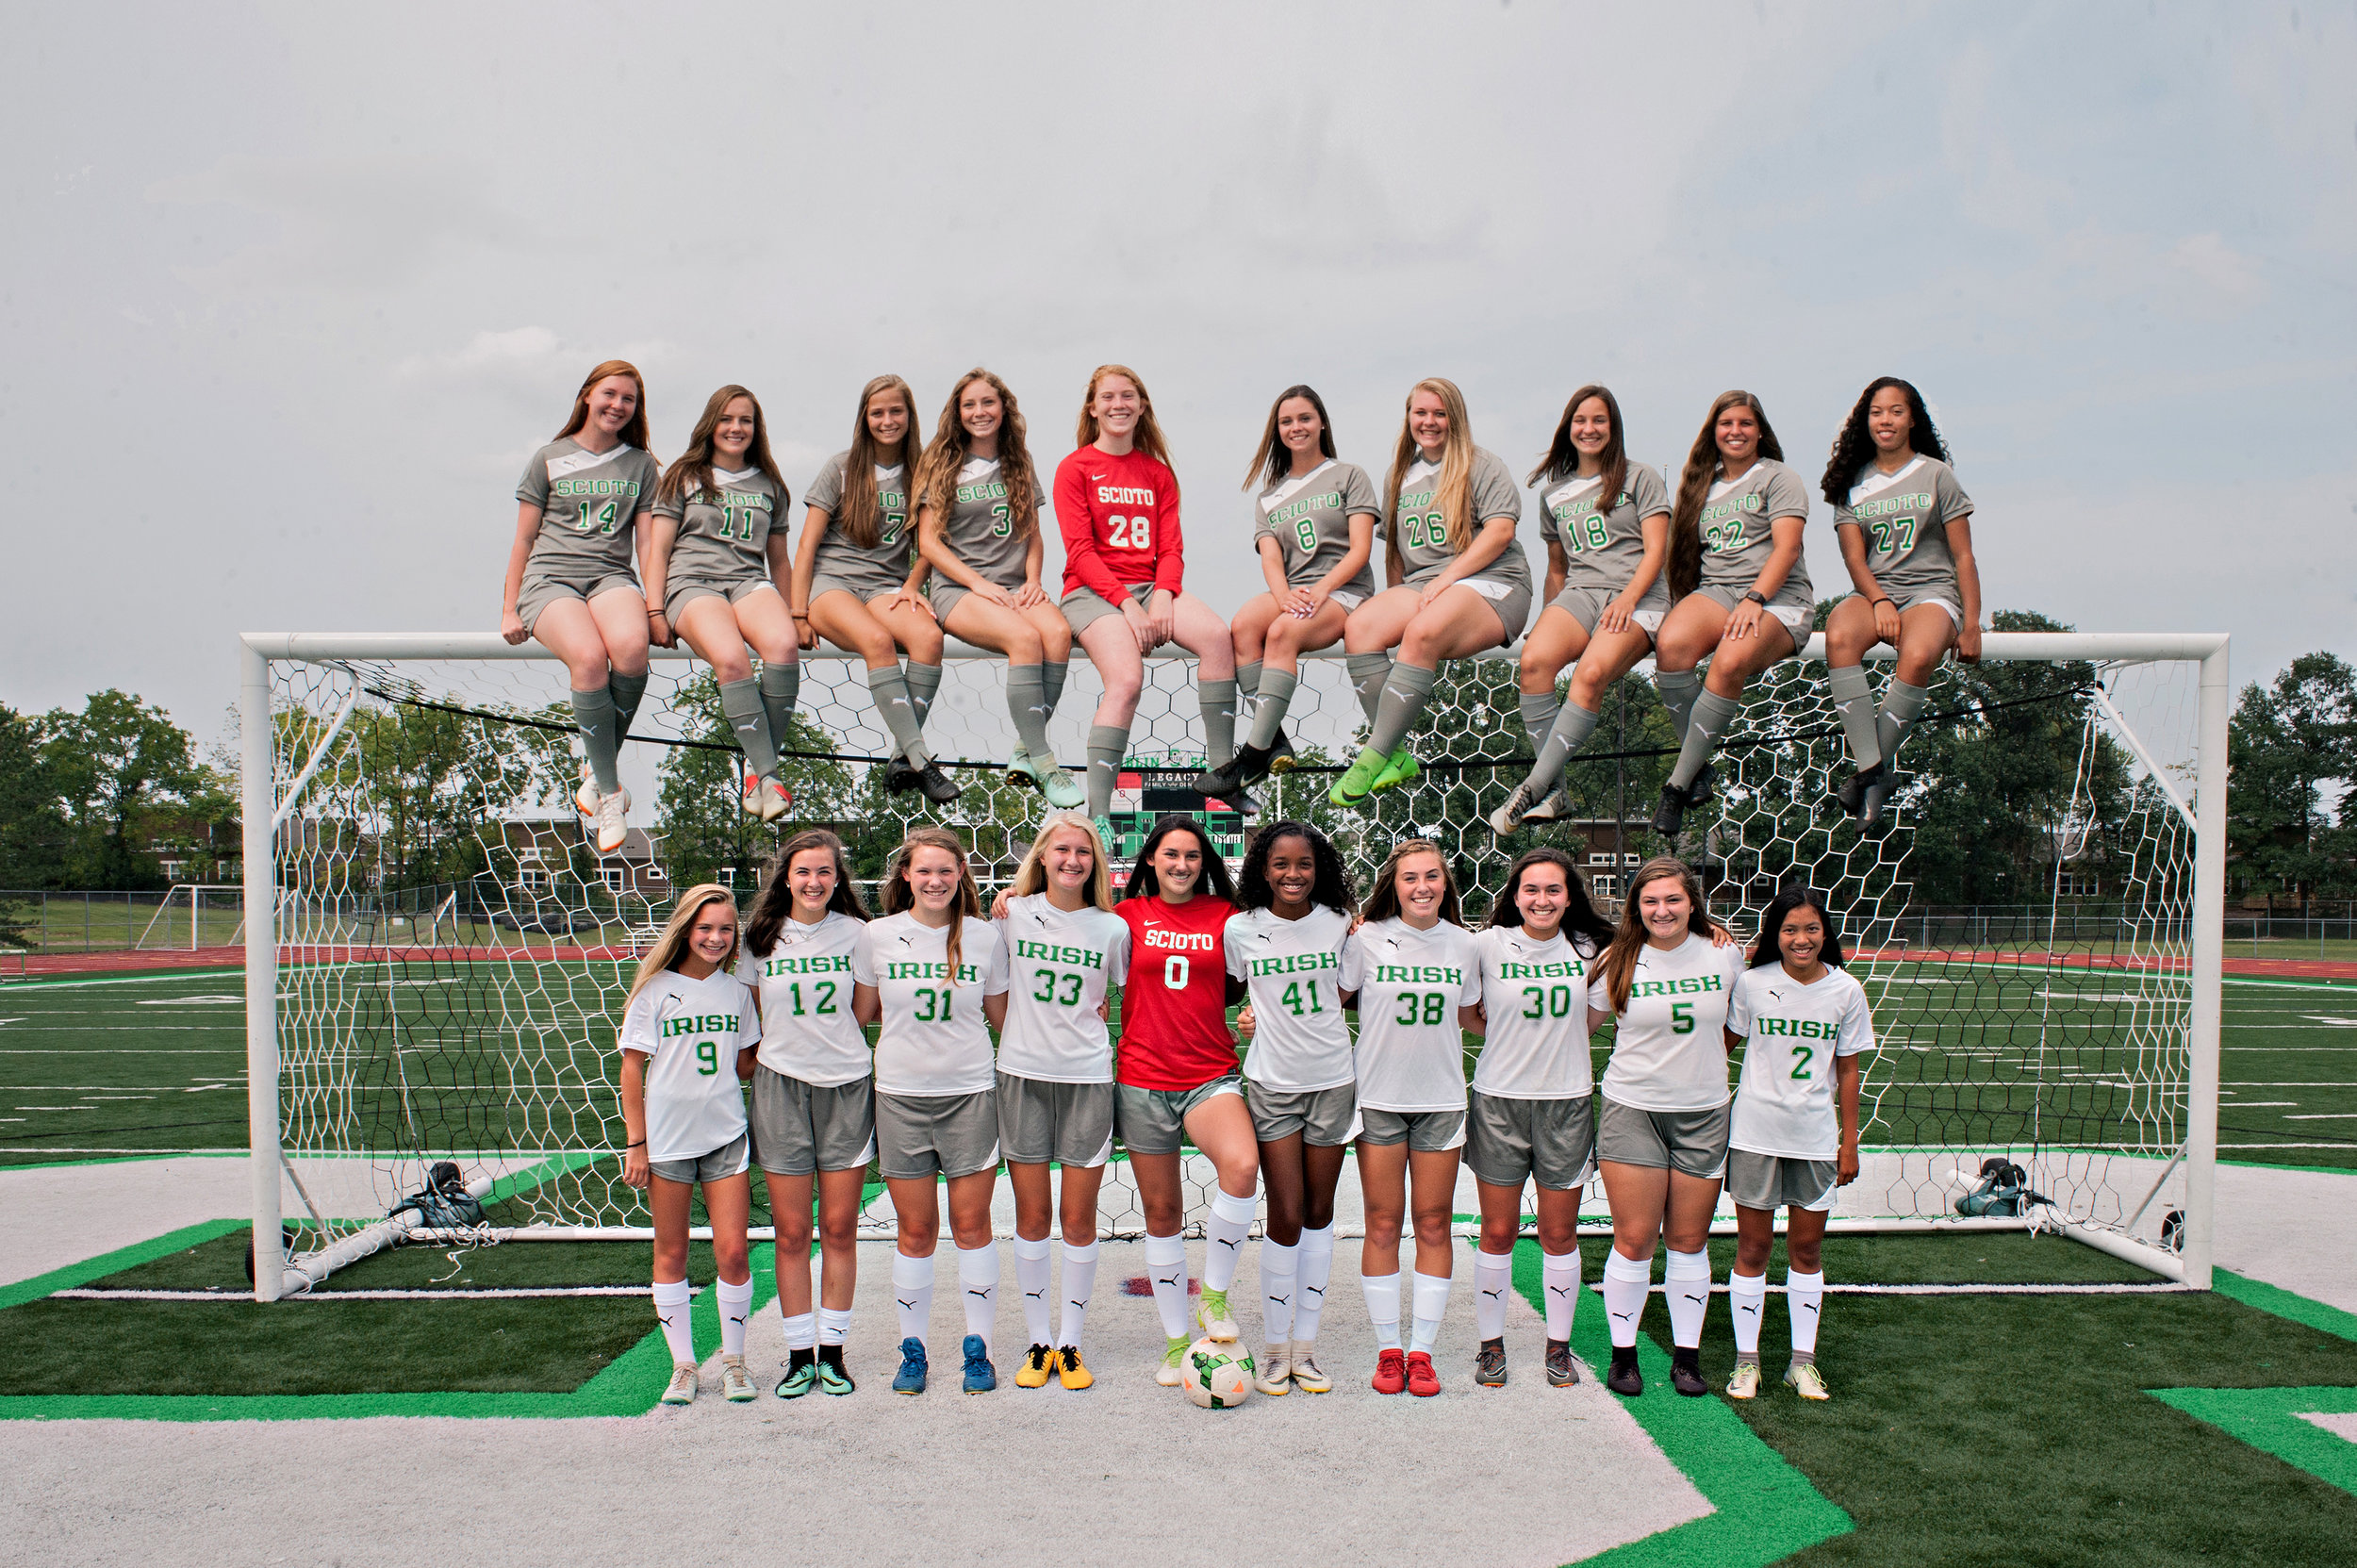 Dublin Scioto Girls Soccer Boosters - Supporting the Dublin Scioto High School Girls Soccer Program